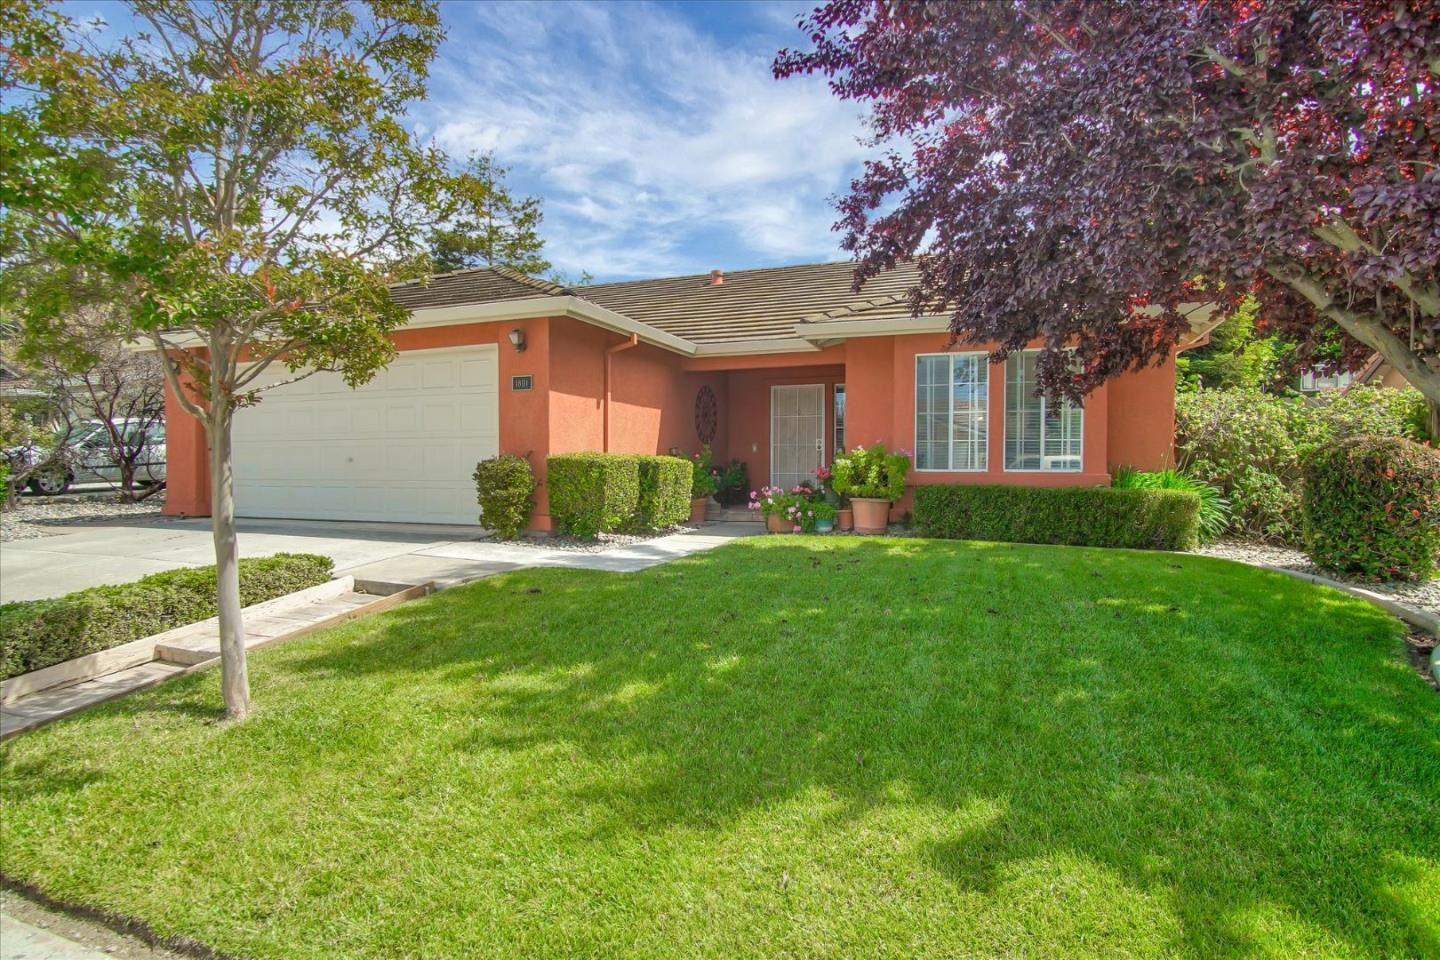 Photo for 1801 Hickory CT, HOLLISTER, CA 95023 (MLS # ML81793775)